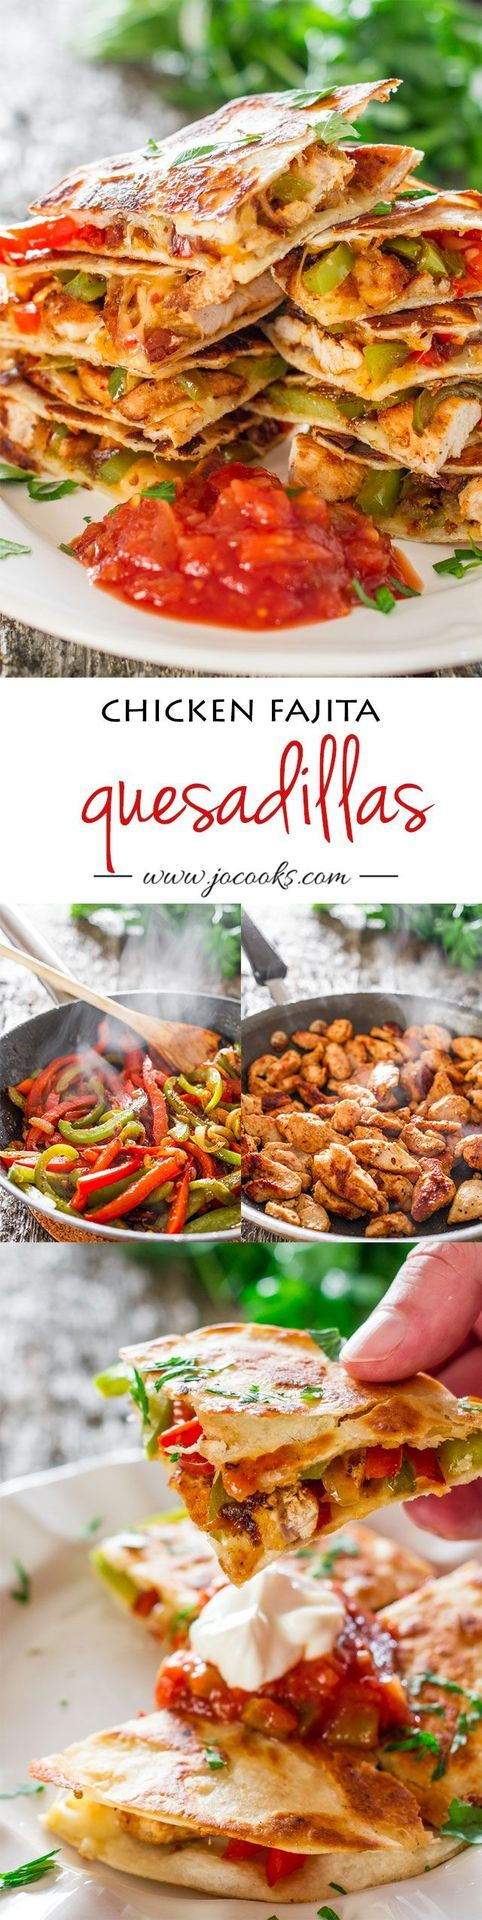 Chicken Fajita Quesadillas - sauteed onions. red and green peppers. perfectly seasoned chicken breast. melted cheese. between two tortillas. Simply yummy.